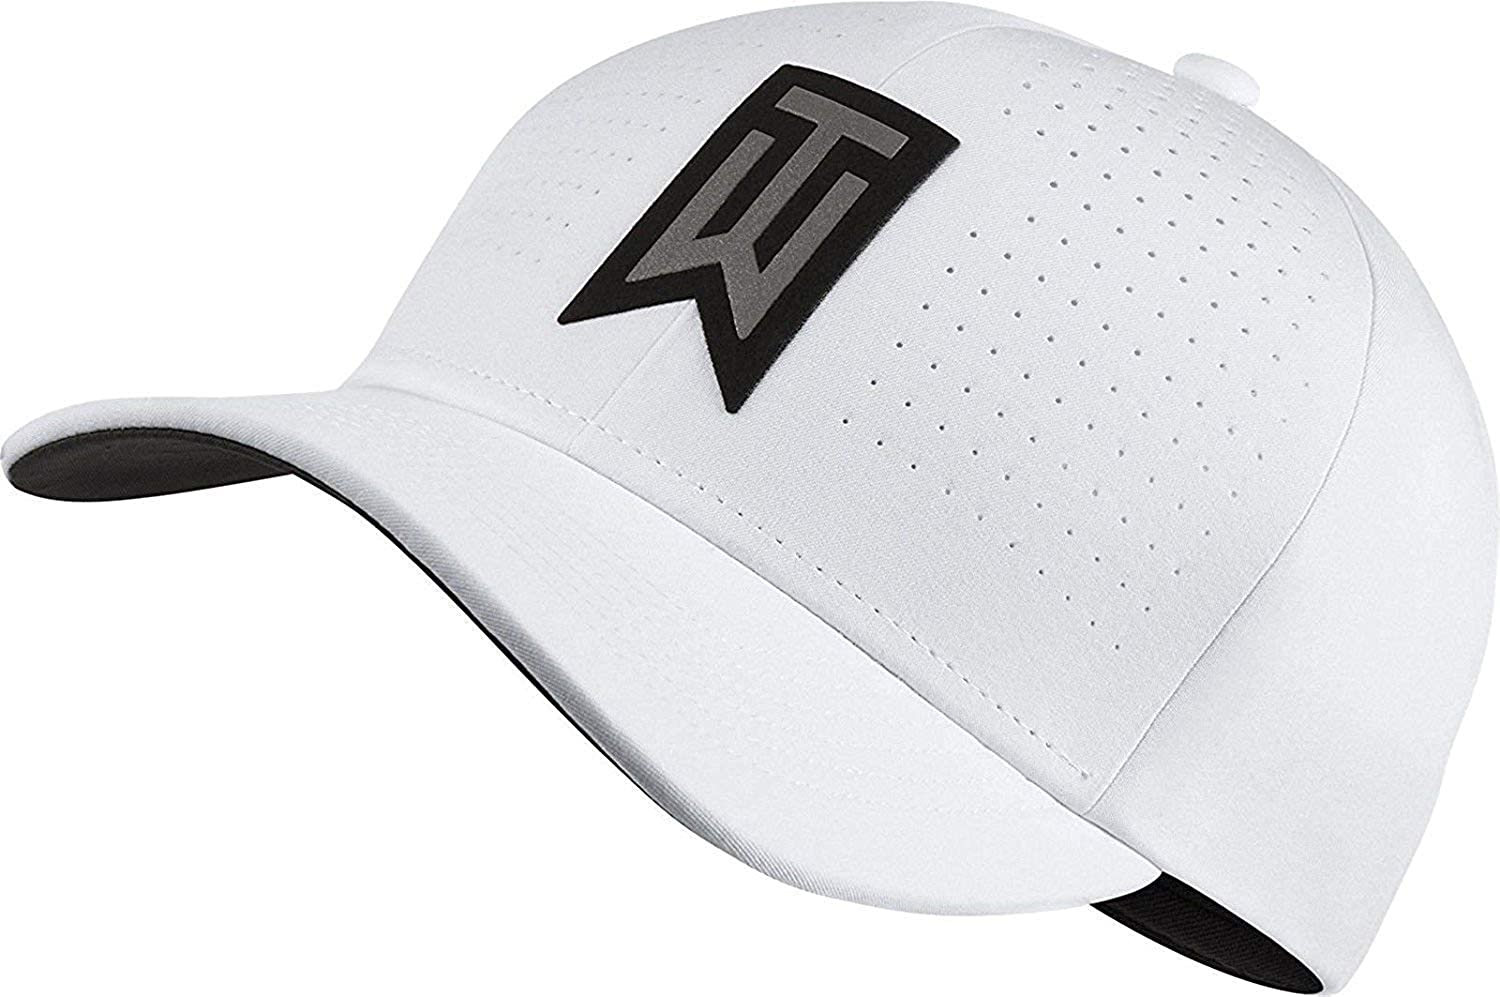 60ab3ade798df Dri-FIT keep you dry and comfortable. Six panel. Fitted Perforated crown  enhances airflow. TW logo on front. Nike Tiger Woods Classic 99 Statement Golf  Cap ...